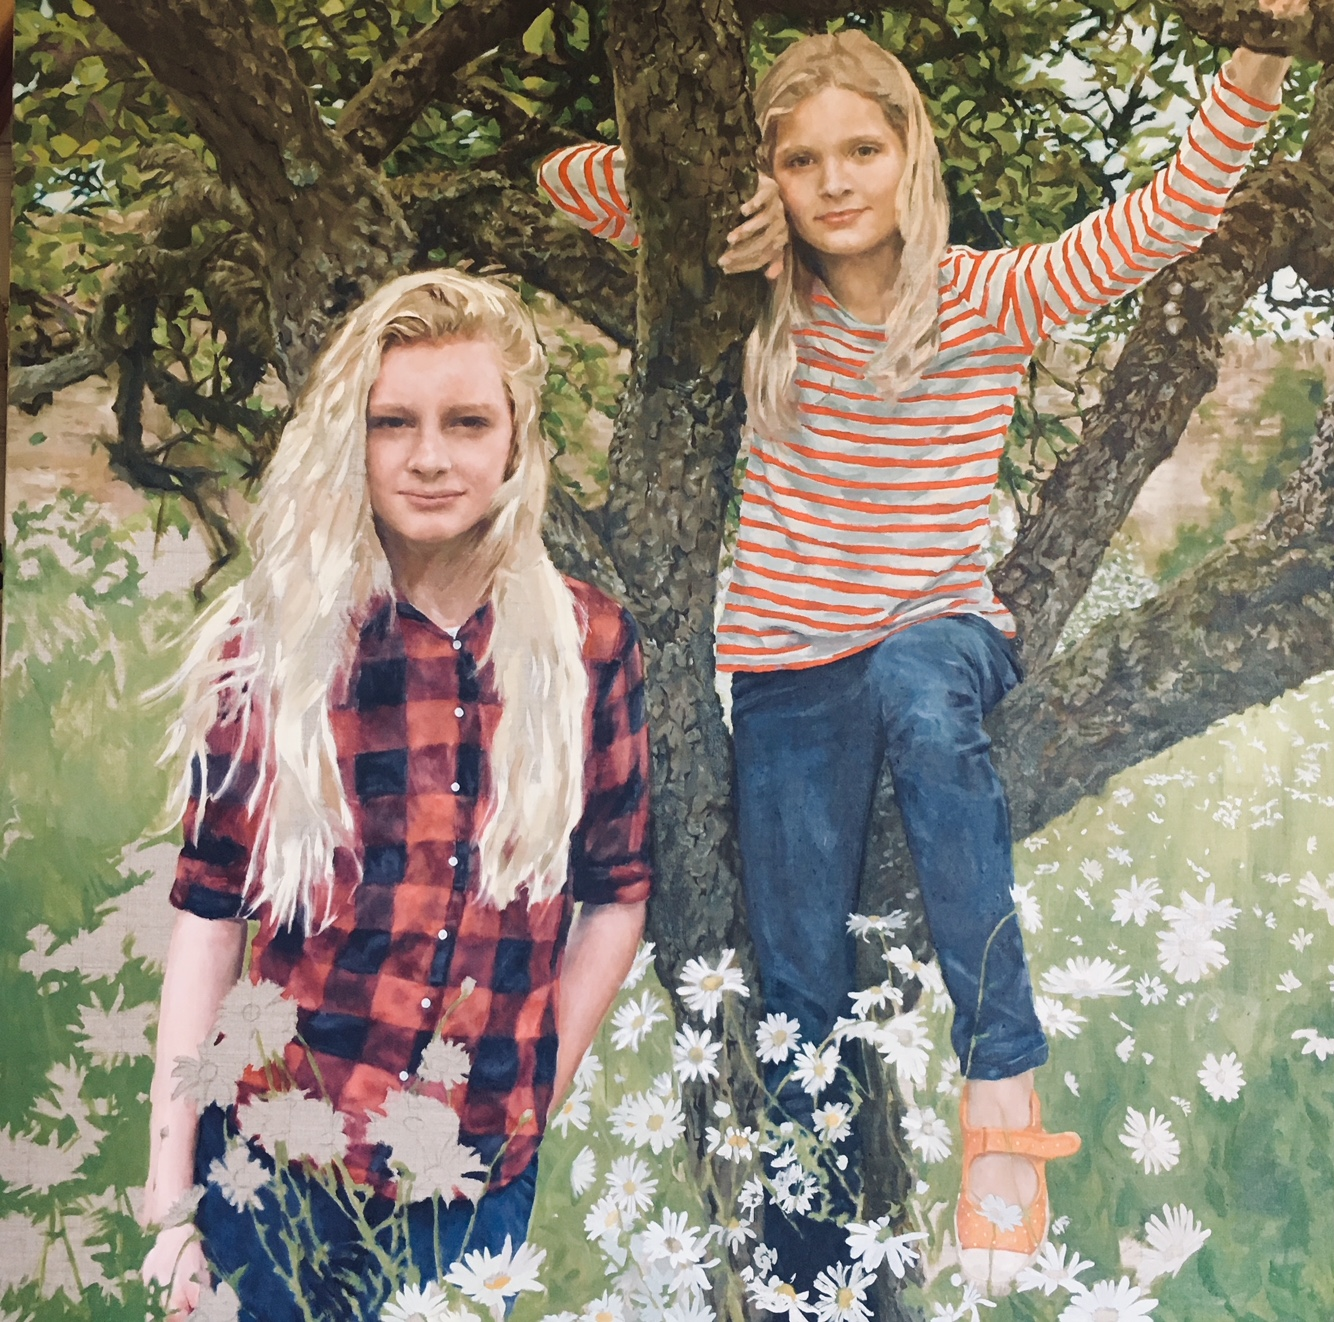 SPA Exhibition 2018, Kate Bogie, The Apple Tree, 120 x 120 cm, Oil, Not for sale All rights reserved